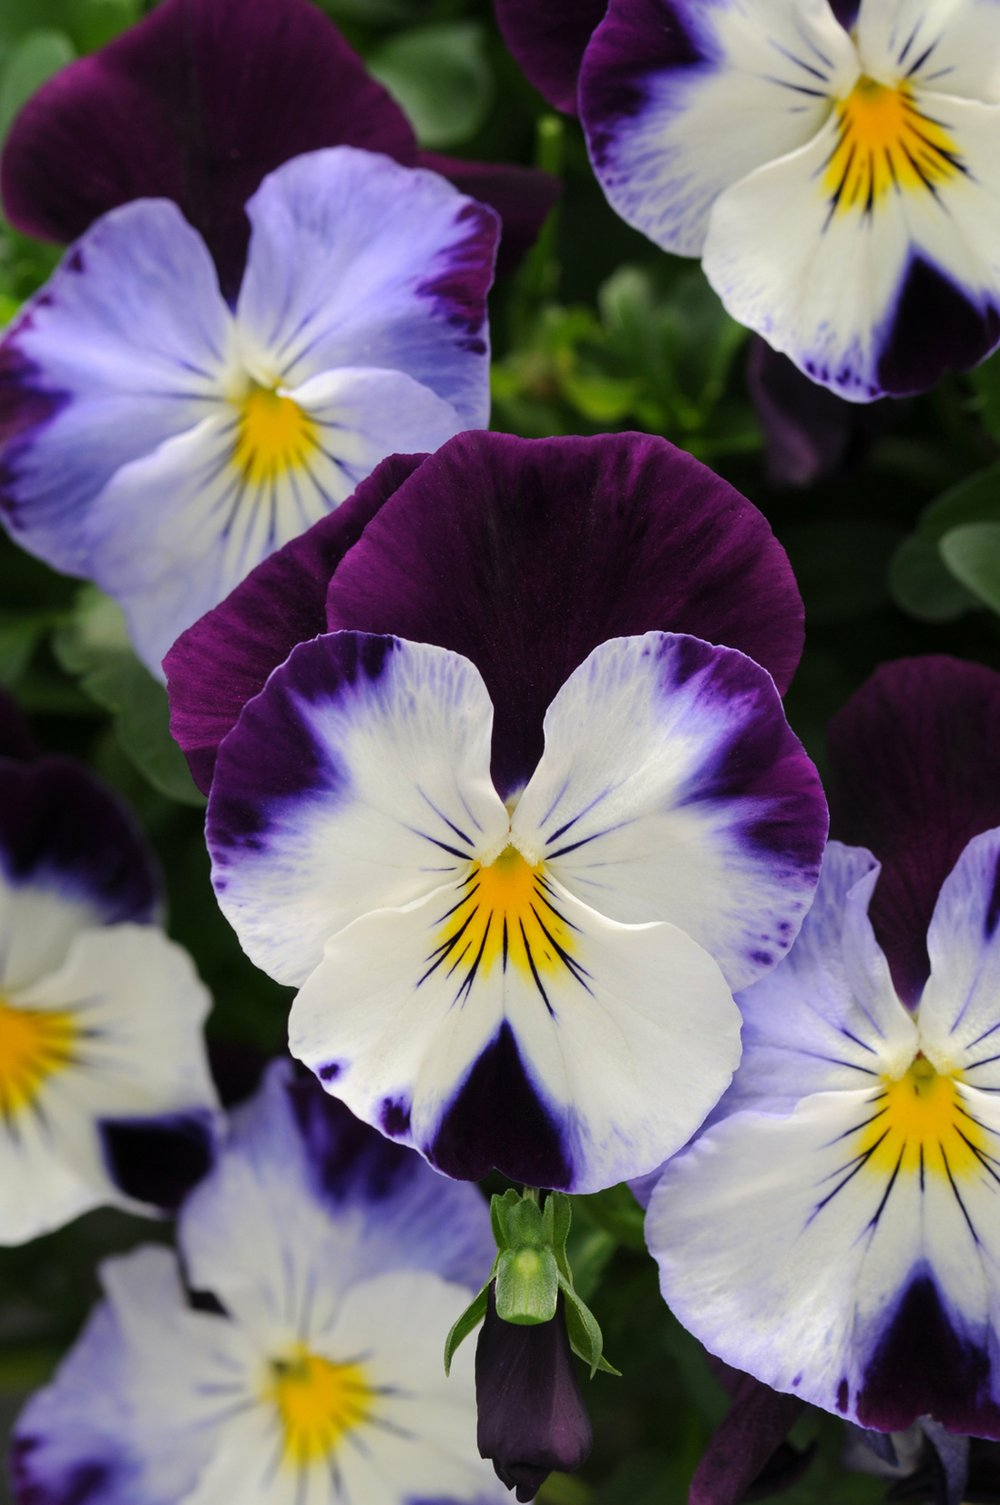 """Rather than face-like blotches, Cool Wave """"Violet Wing"""" spreading pansy flowers have vibrant color blocks and fine lines. (Photo via Arkansas Green Industry Association)"""